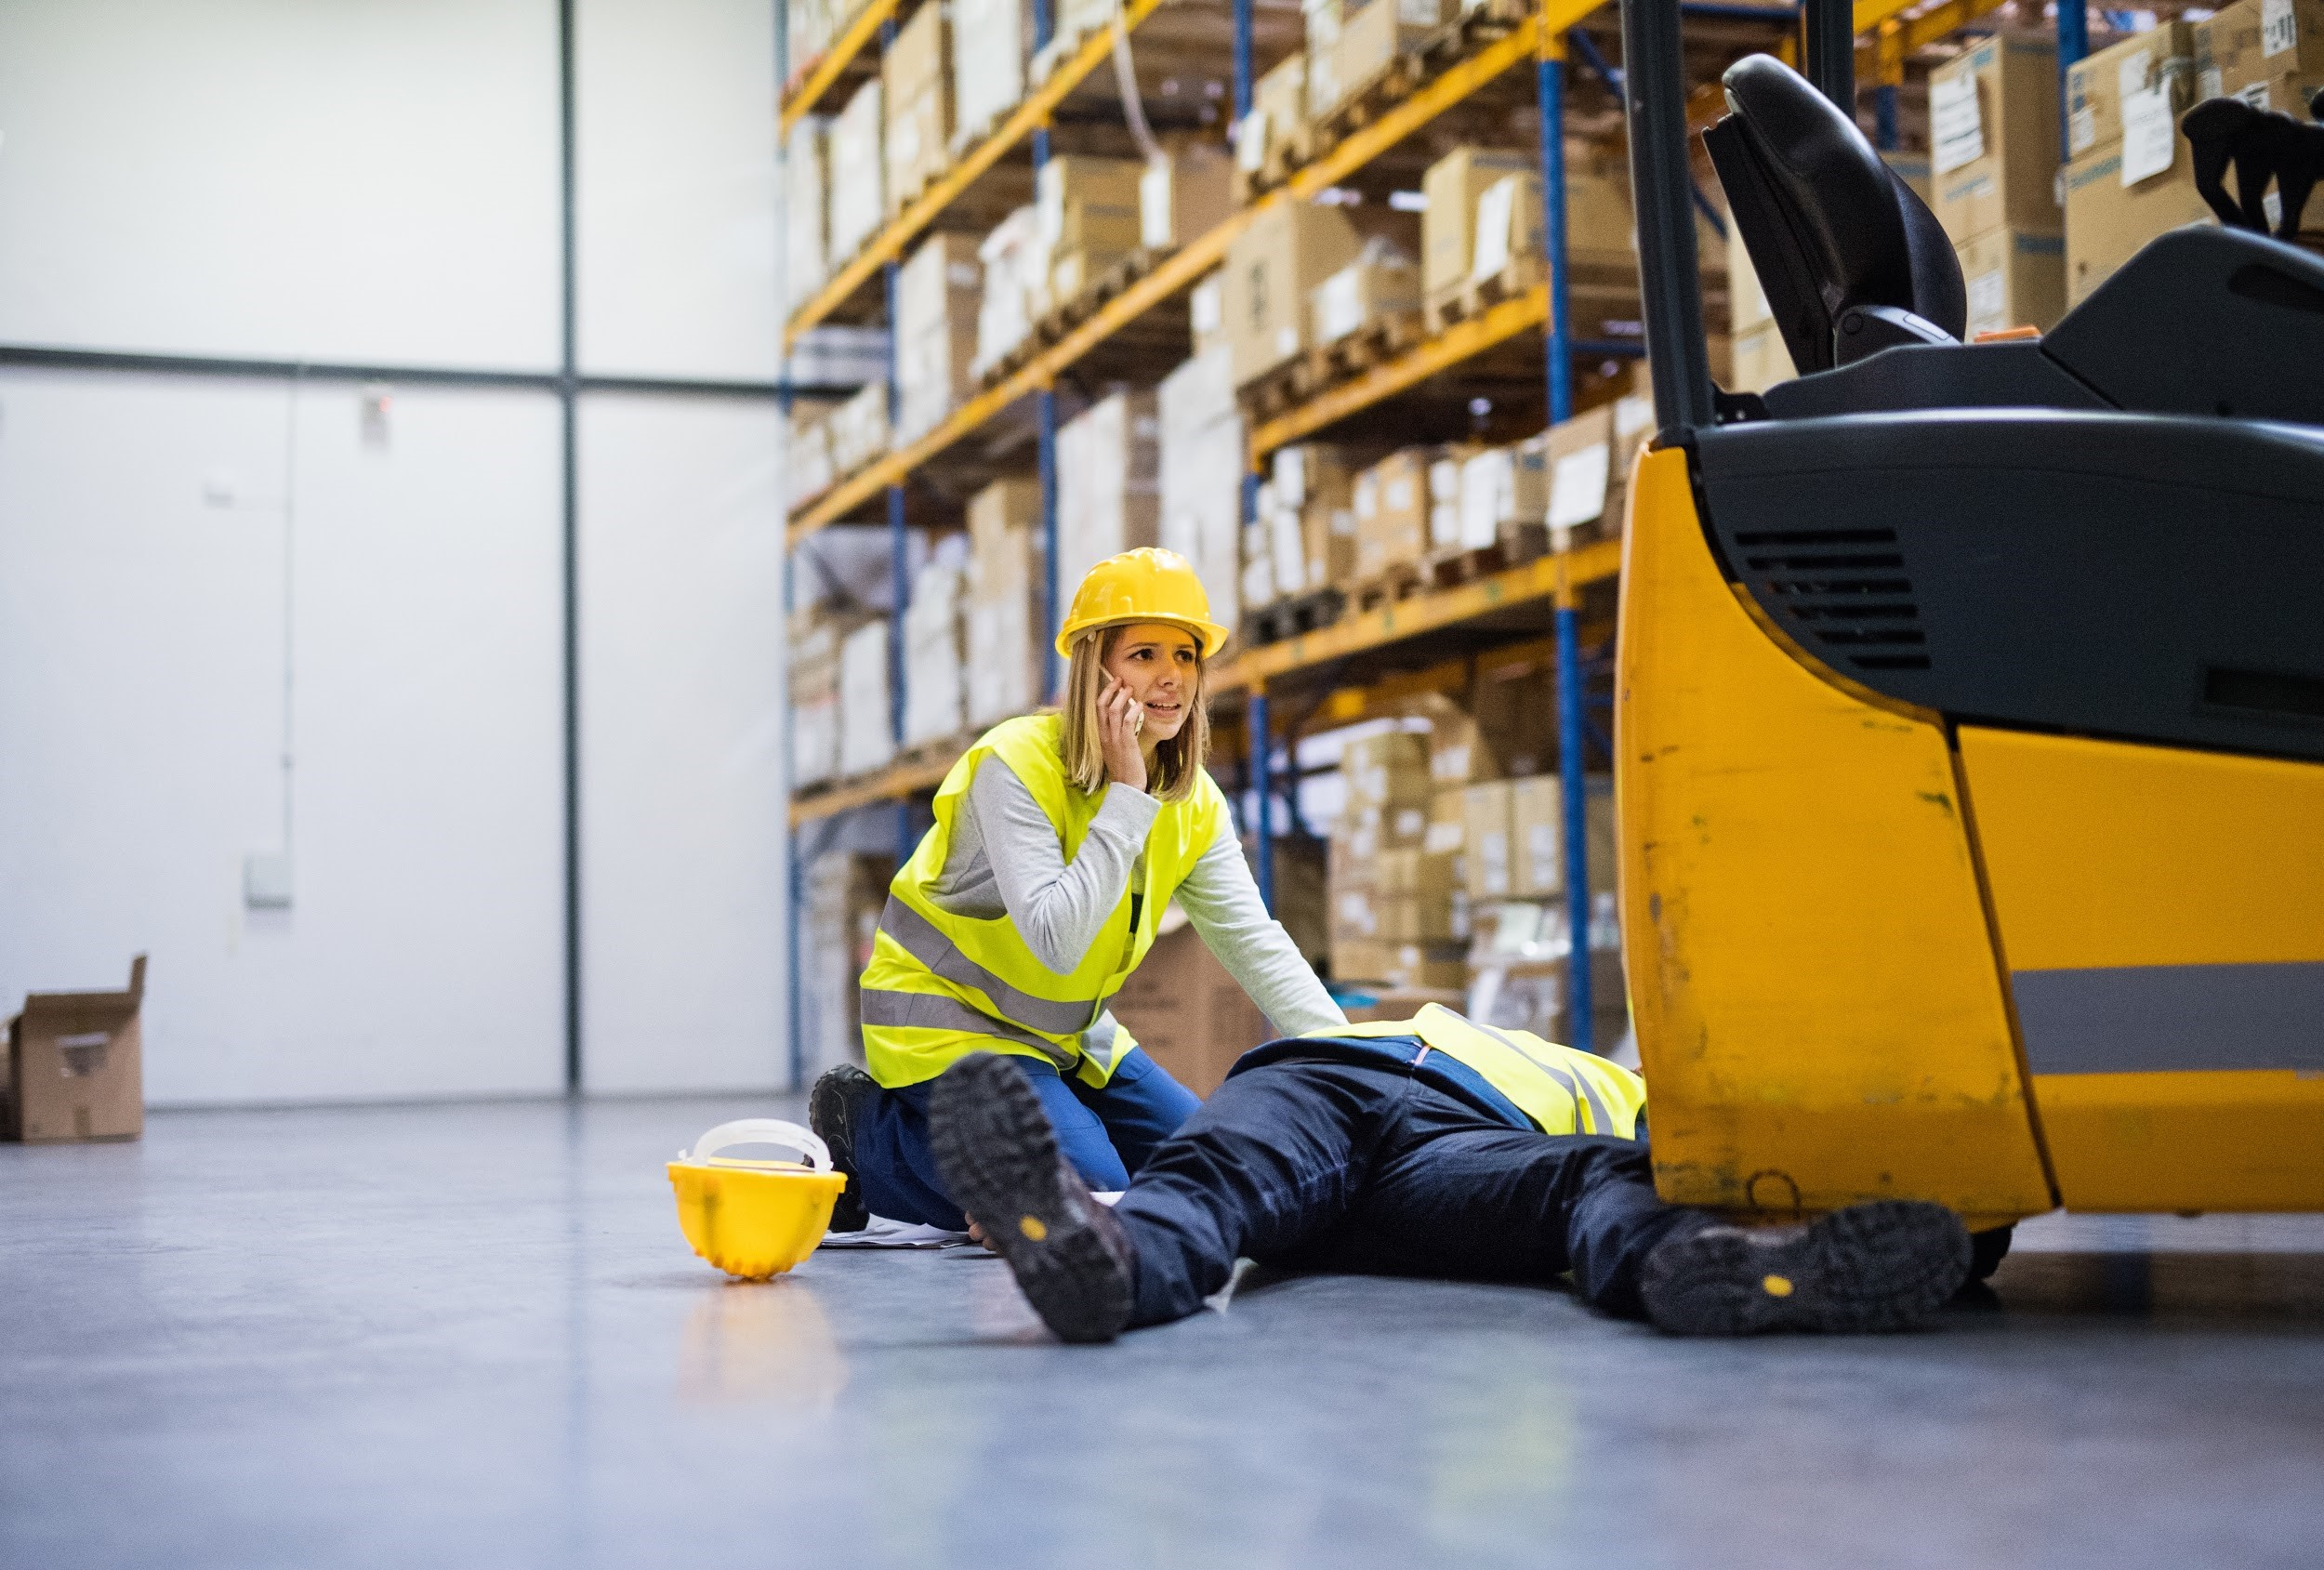 man laying on ground while coworker calls for help after forklift accident in warehouse